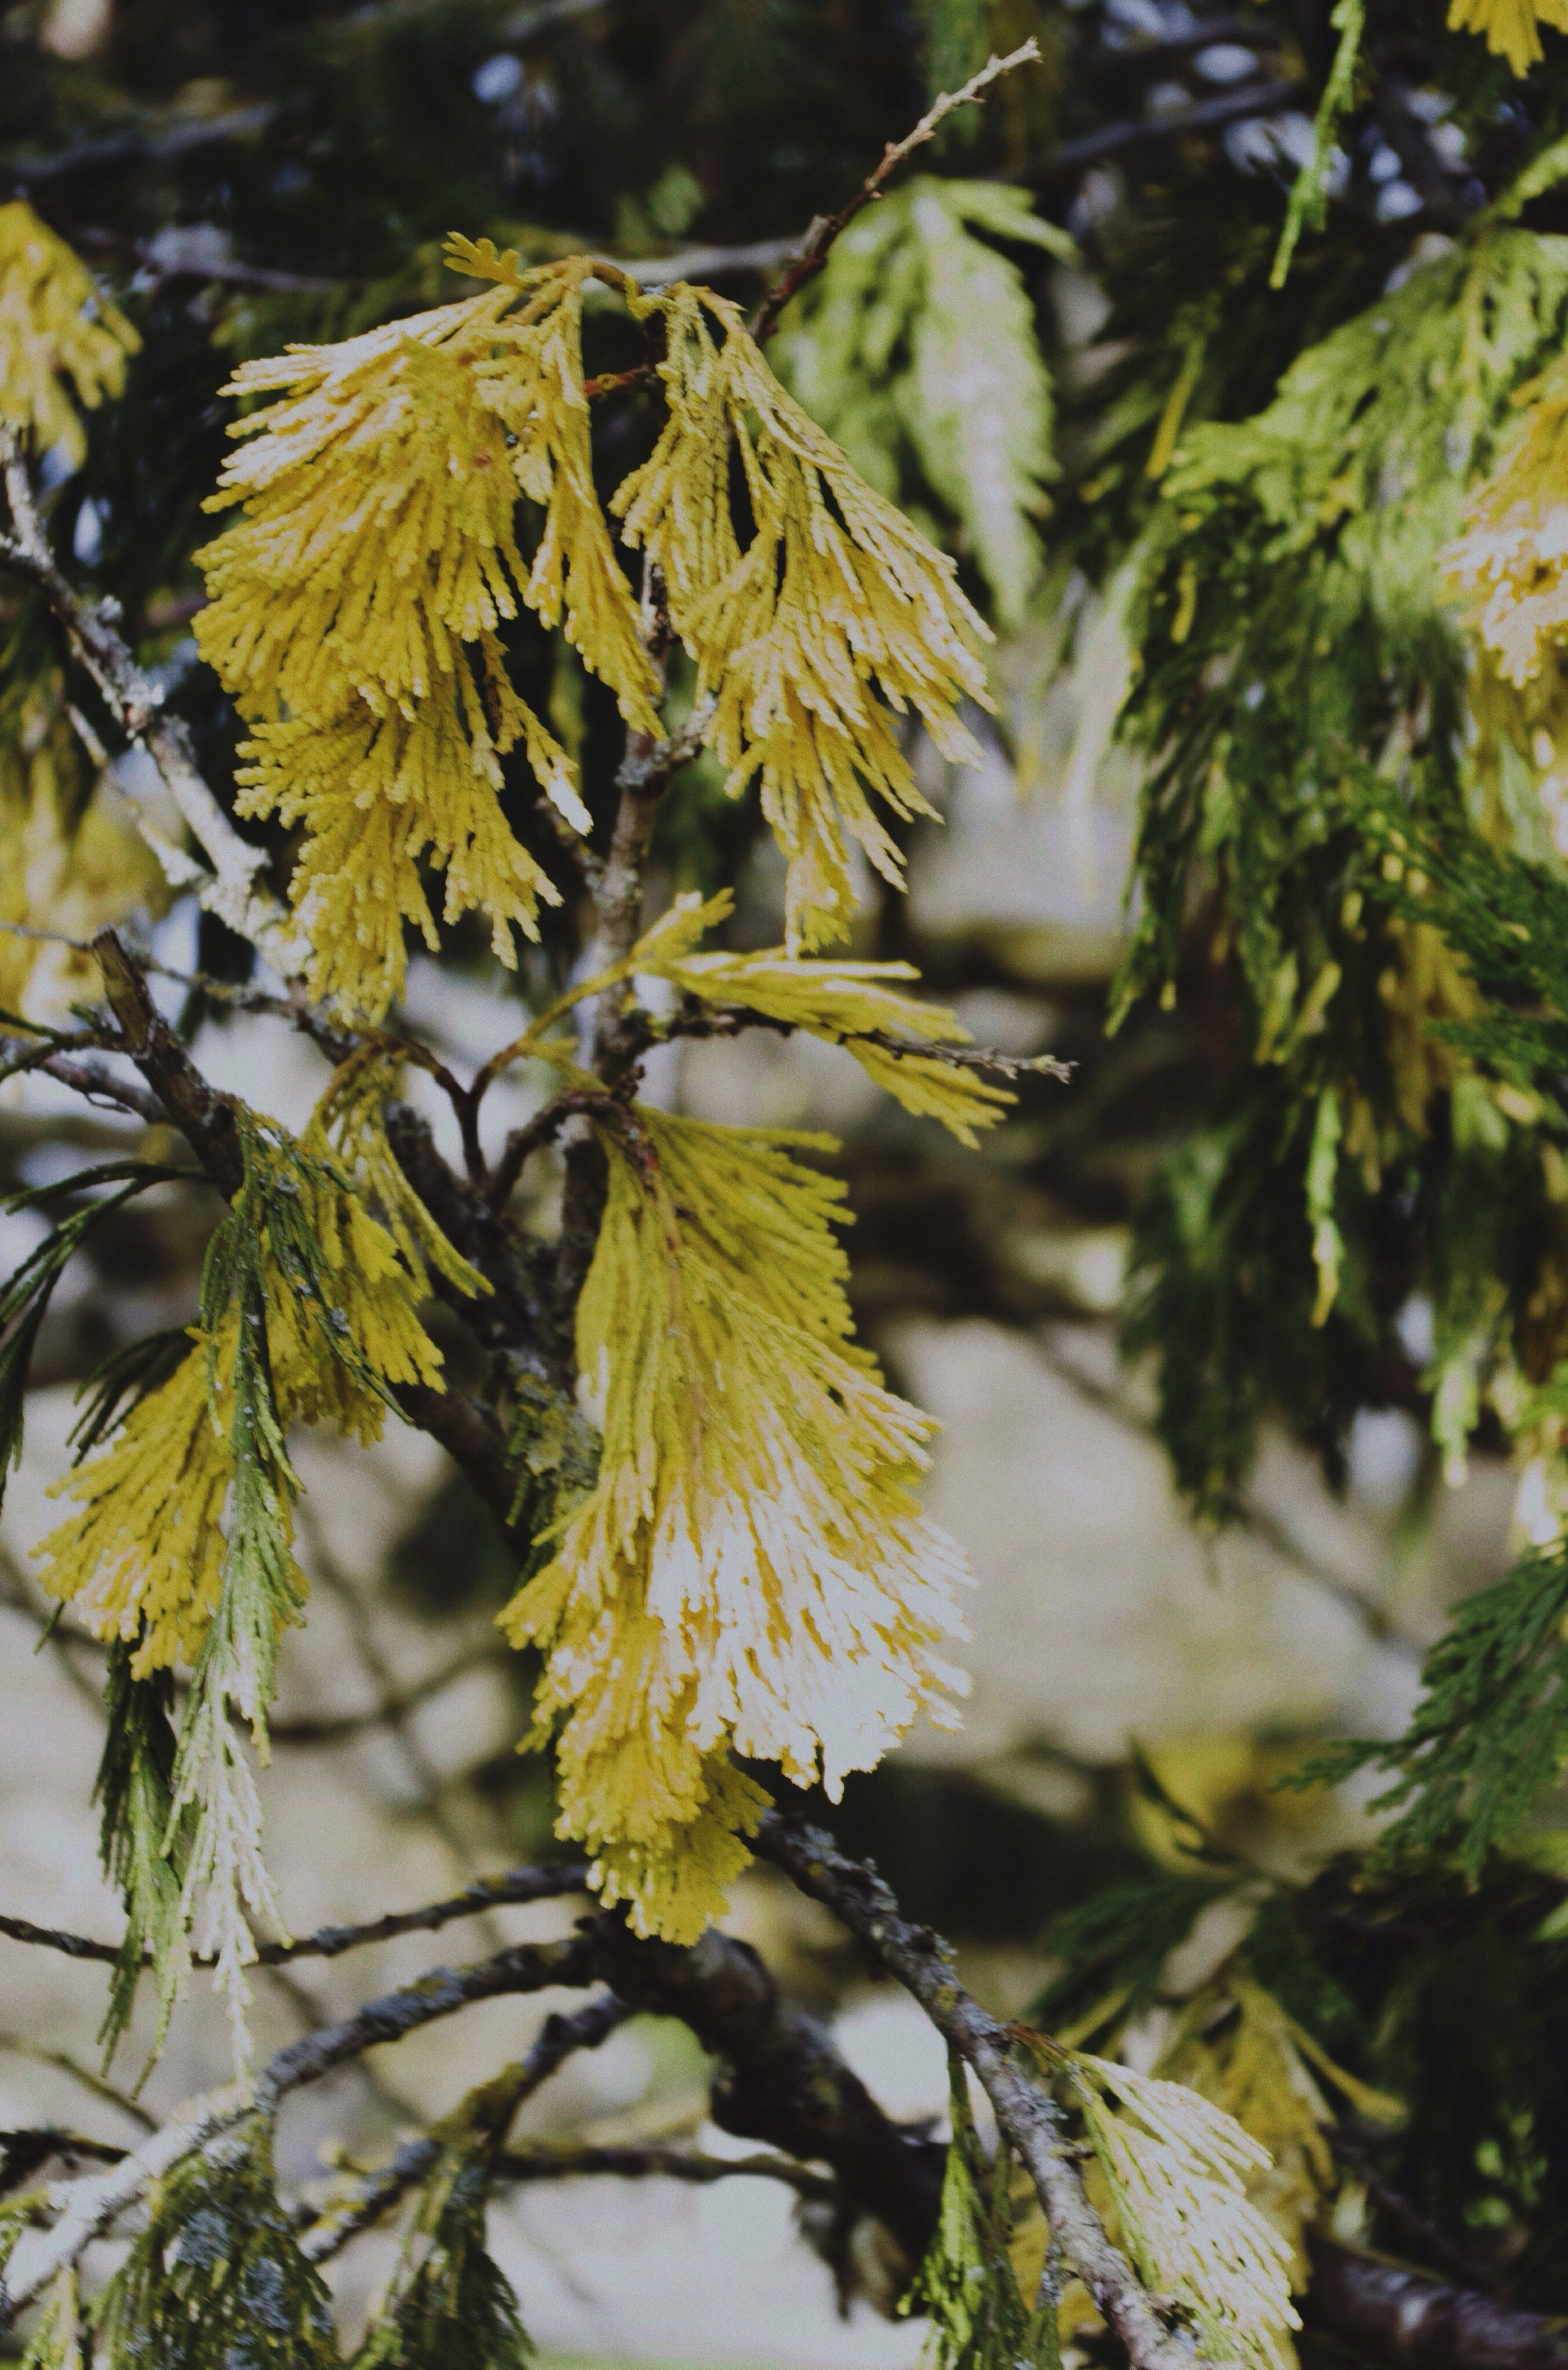 leaf, growth, close-up, yellow, focus on foreground, nature, branch, plant, season, tree, beauty in nature, fragility, outdoors, day, leaves, tranquility, sunlight, autumn, no people, selective focus